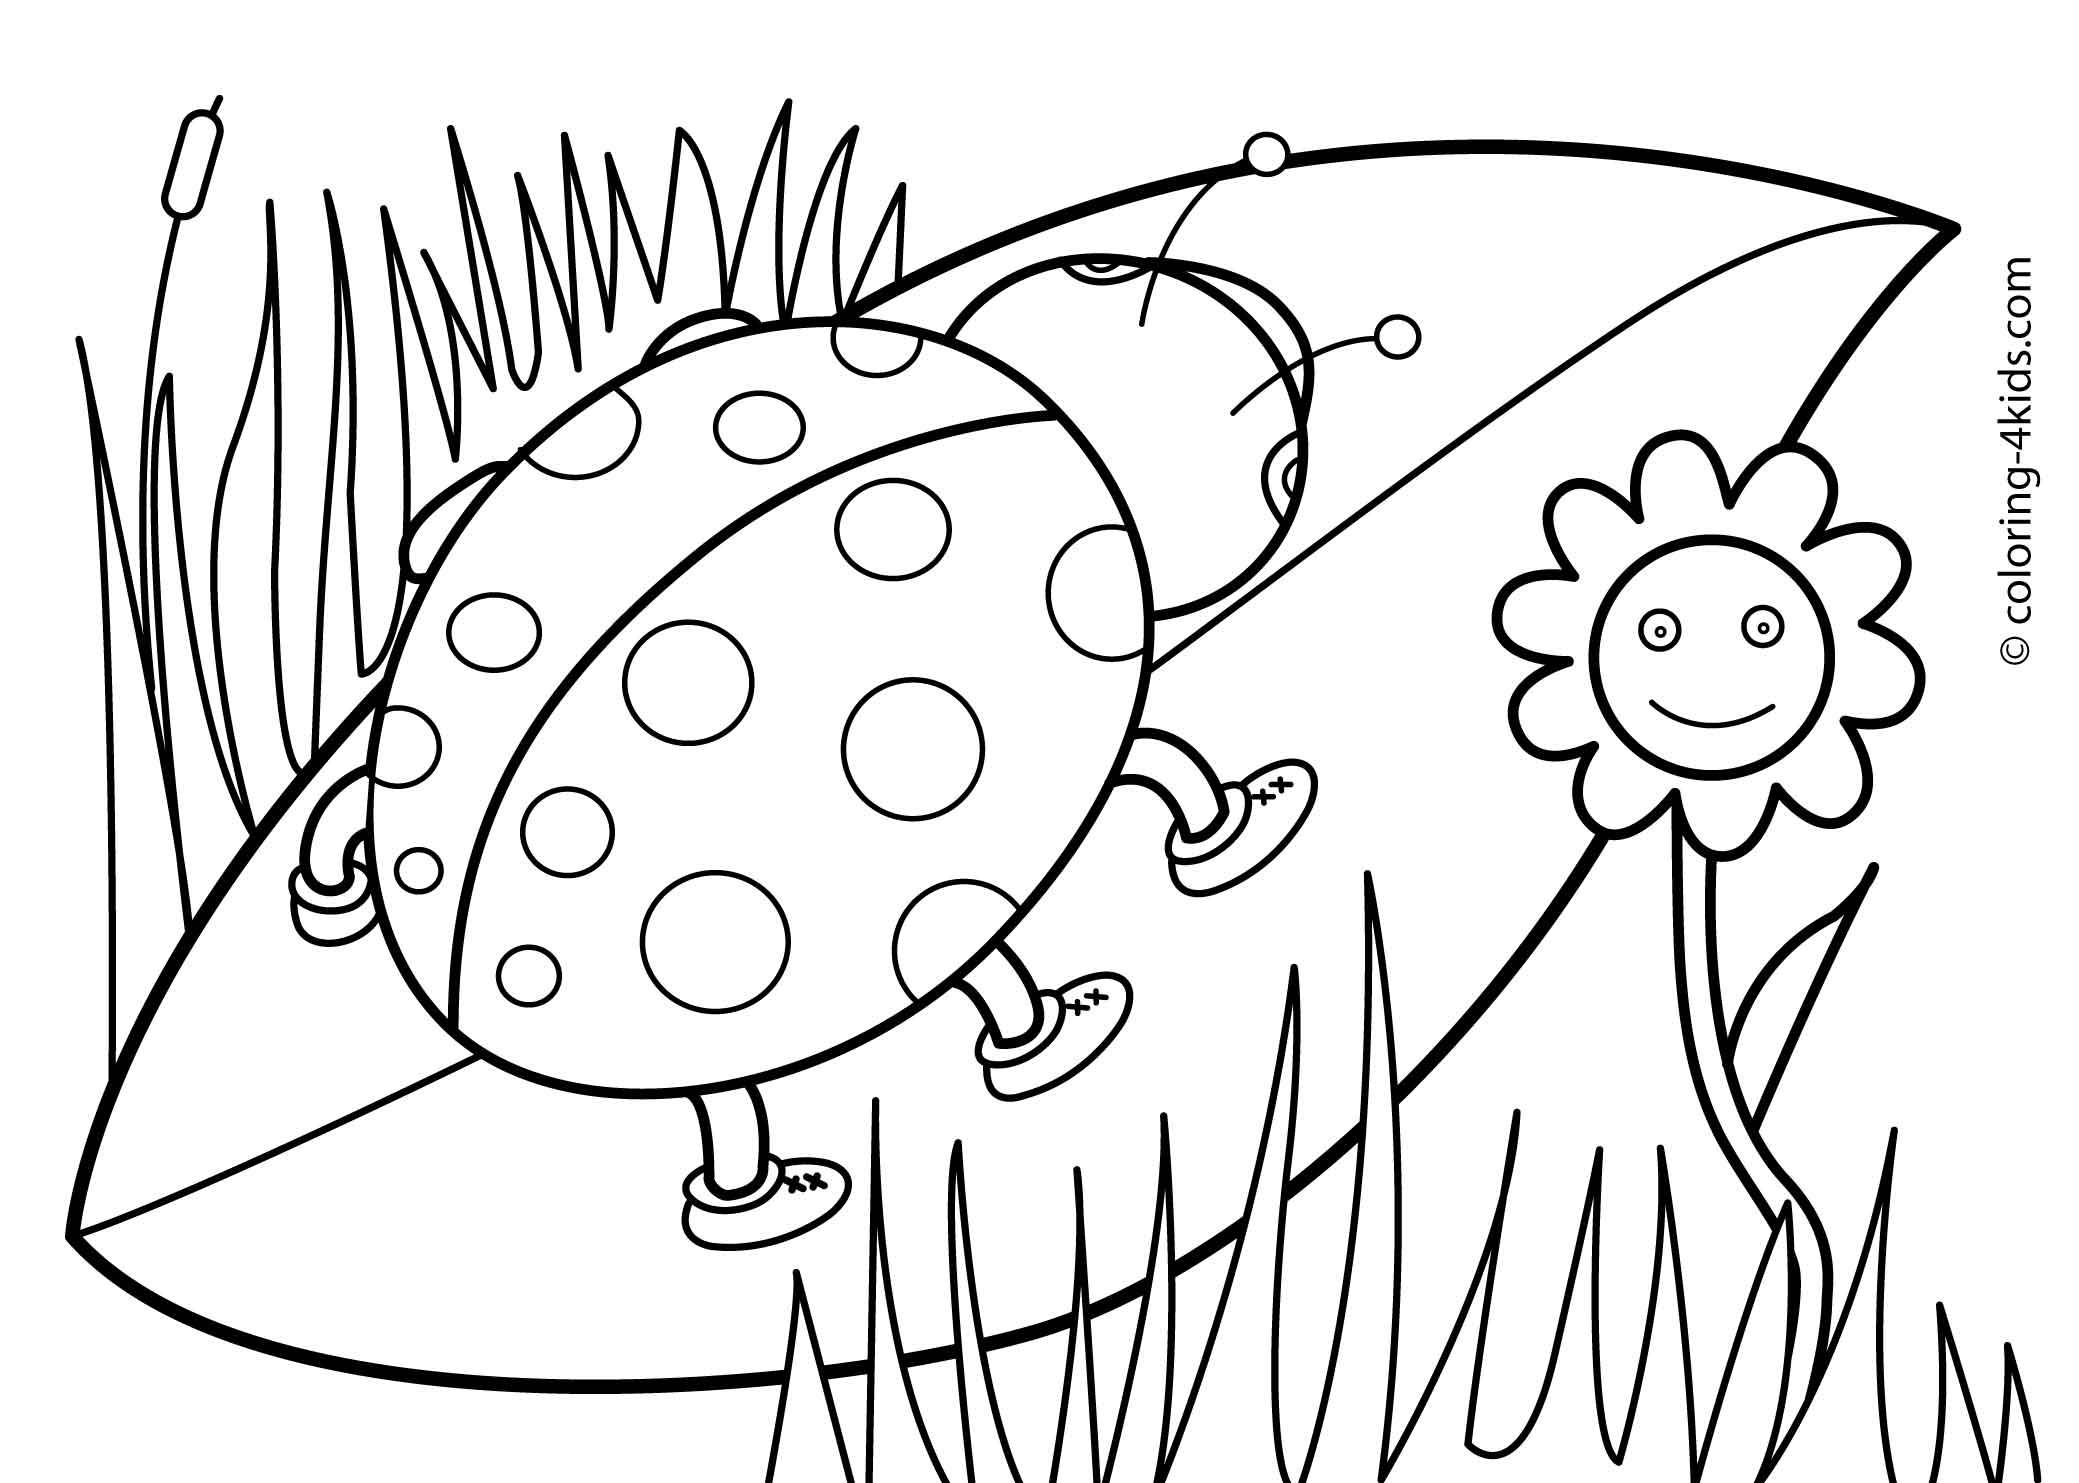 coloring worksheets about nature free printable nature coloring pages for kids best worksheets nature about coloring